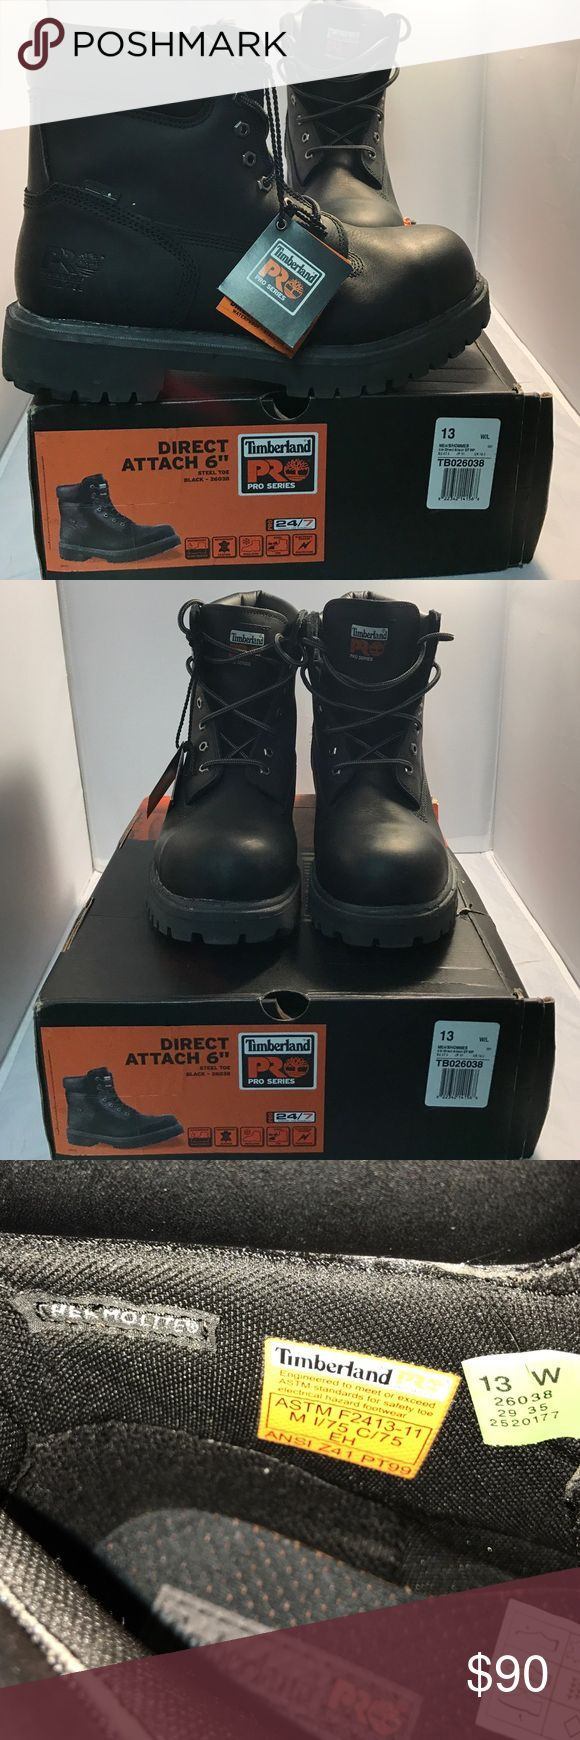 NWT Timberland Pro Series in black size 13 NWT and box Timberland Pro Series in black. Waterproof, insulated, steal toe and electrical hazard protection. Retails over $129. Timberland Shoes Boots